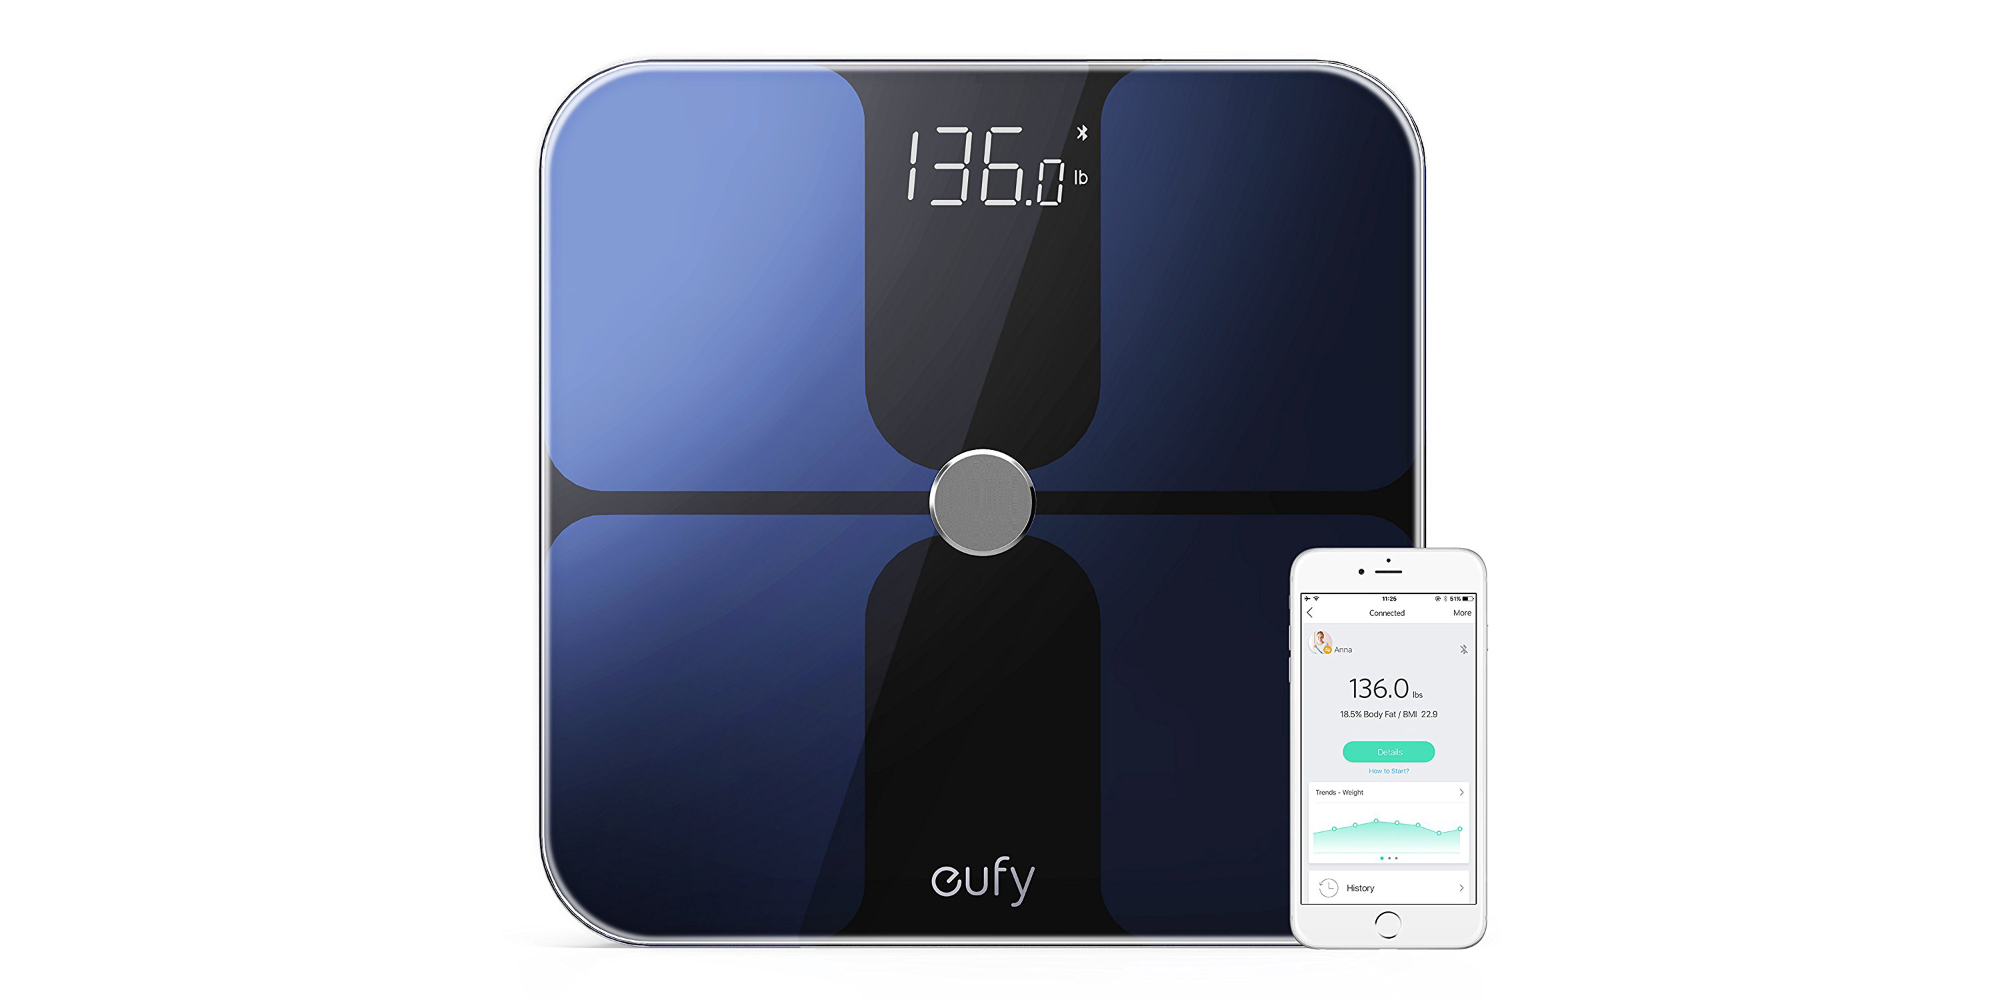 Track body fat, BMI, bone mass & more w/ eufy's Smart Scale for $31.50 (more than 20% off)